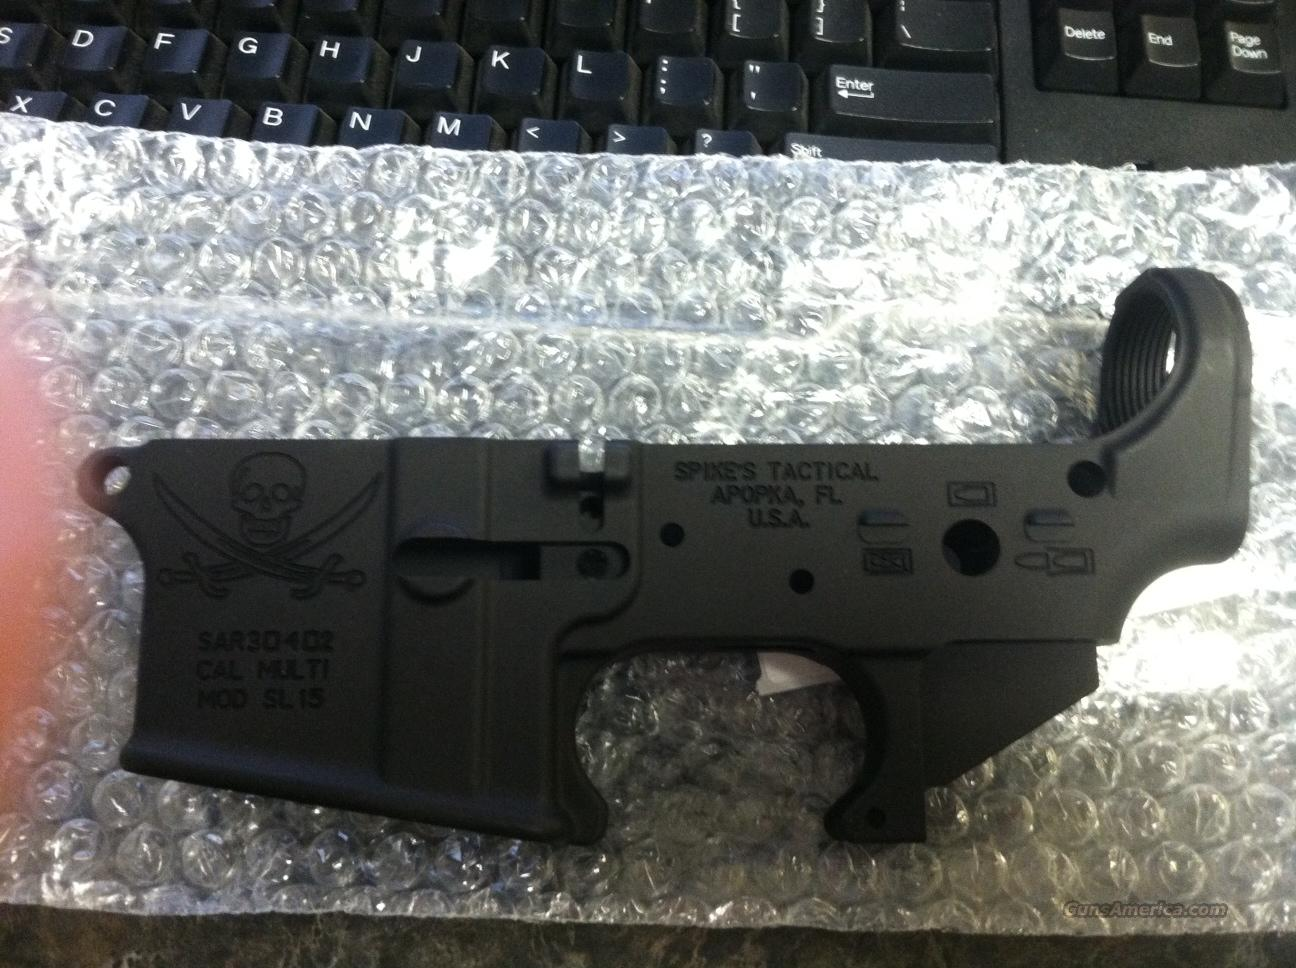 Spikes Tactical Calico Jack Pirate Stripped lower receiver  Guns > Rifles > AR-15 Rifles - Small Manufacturers > Lower Only